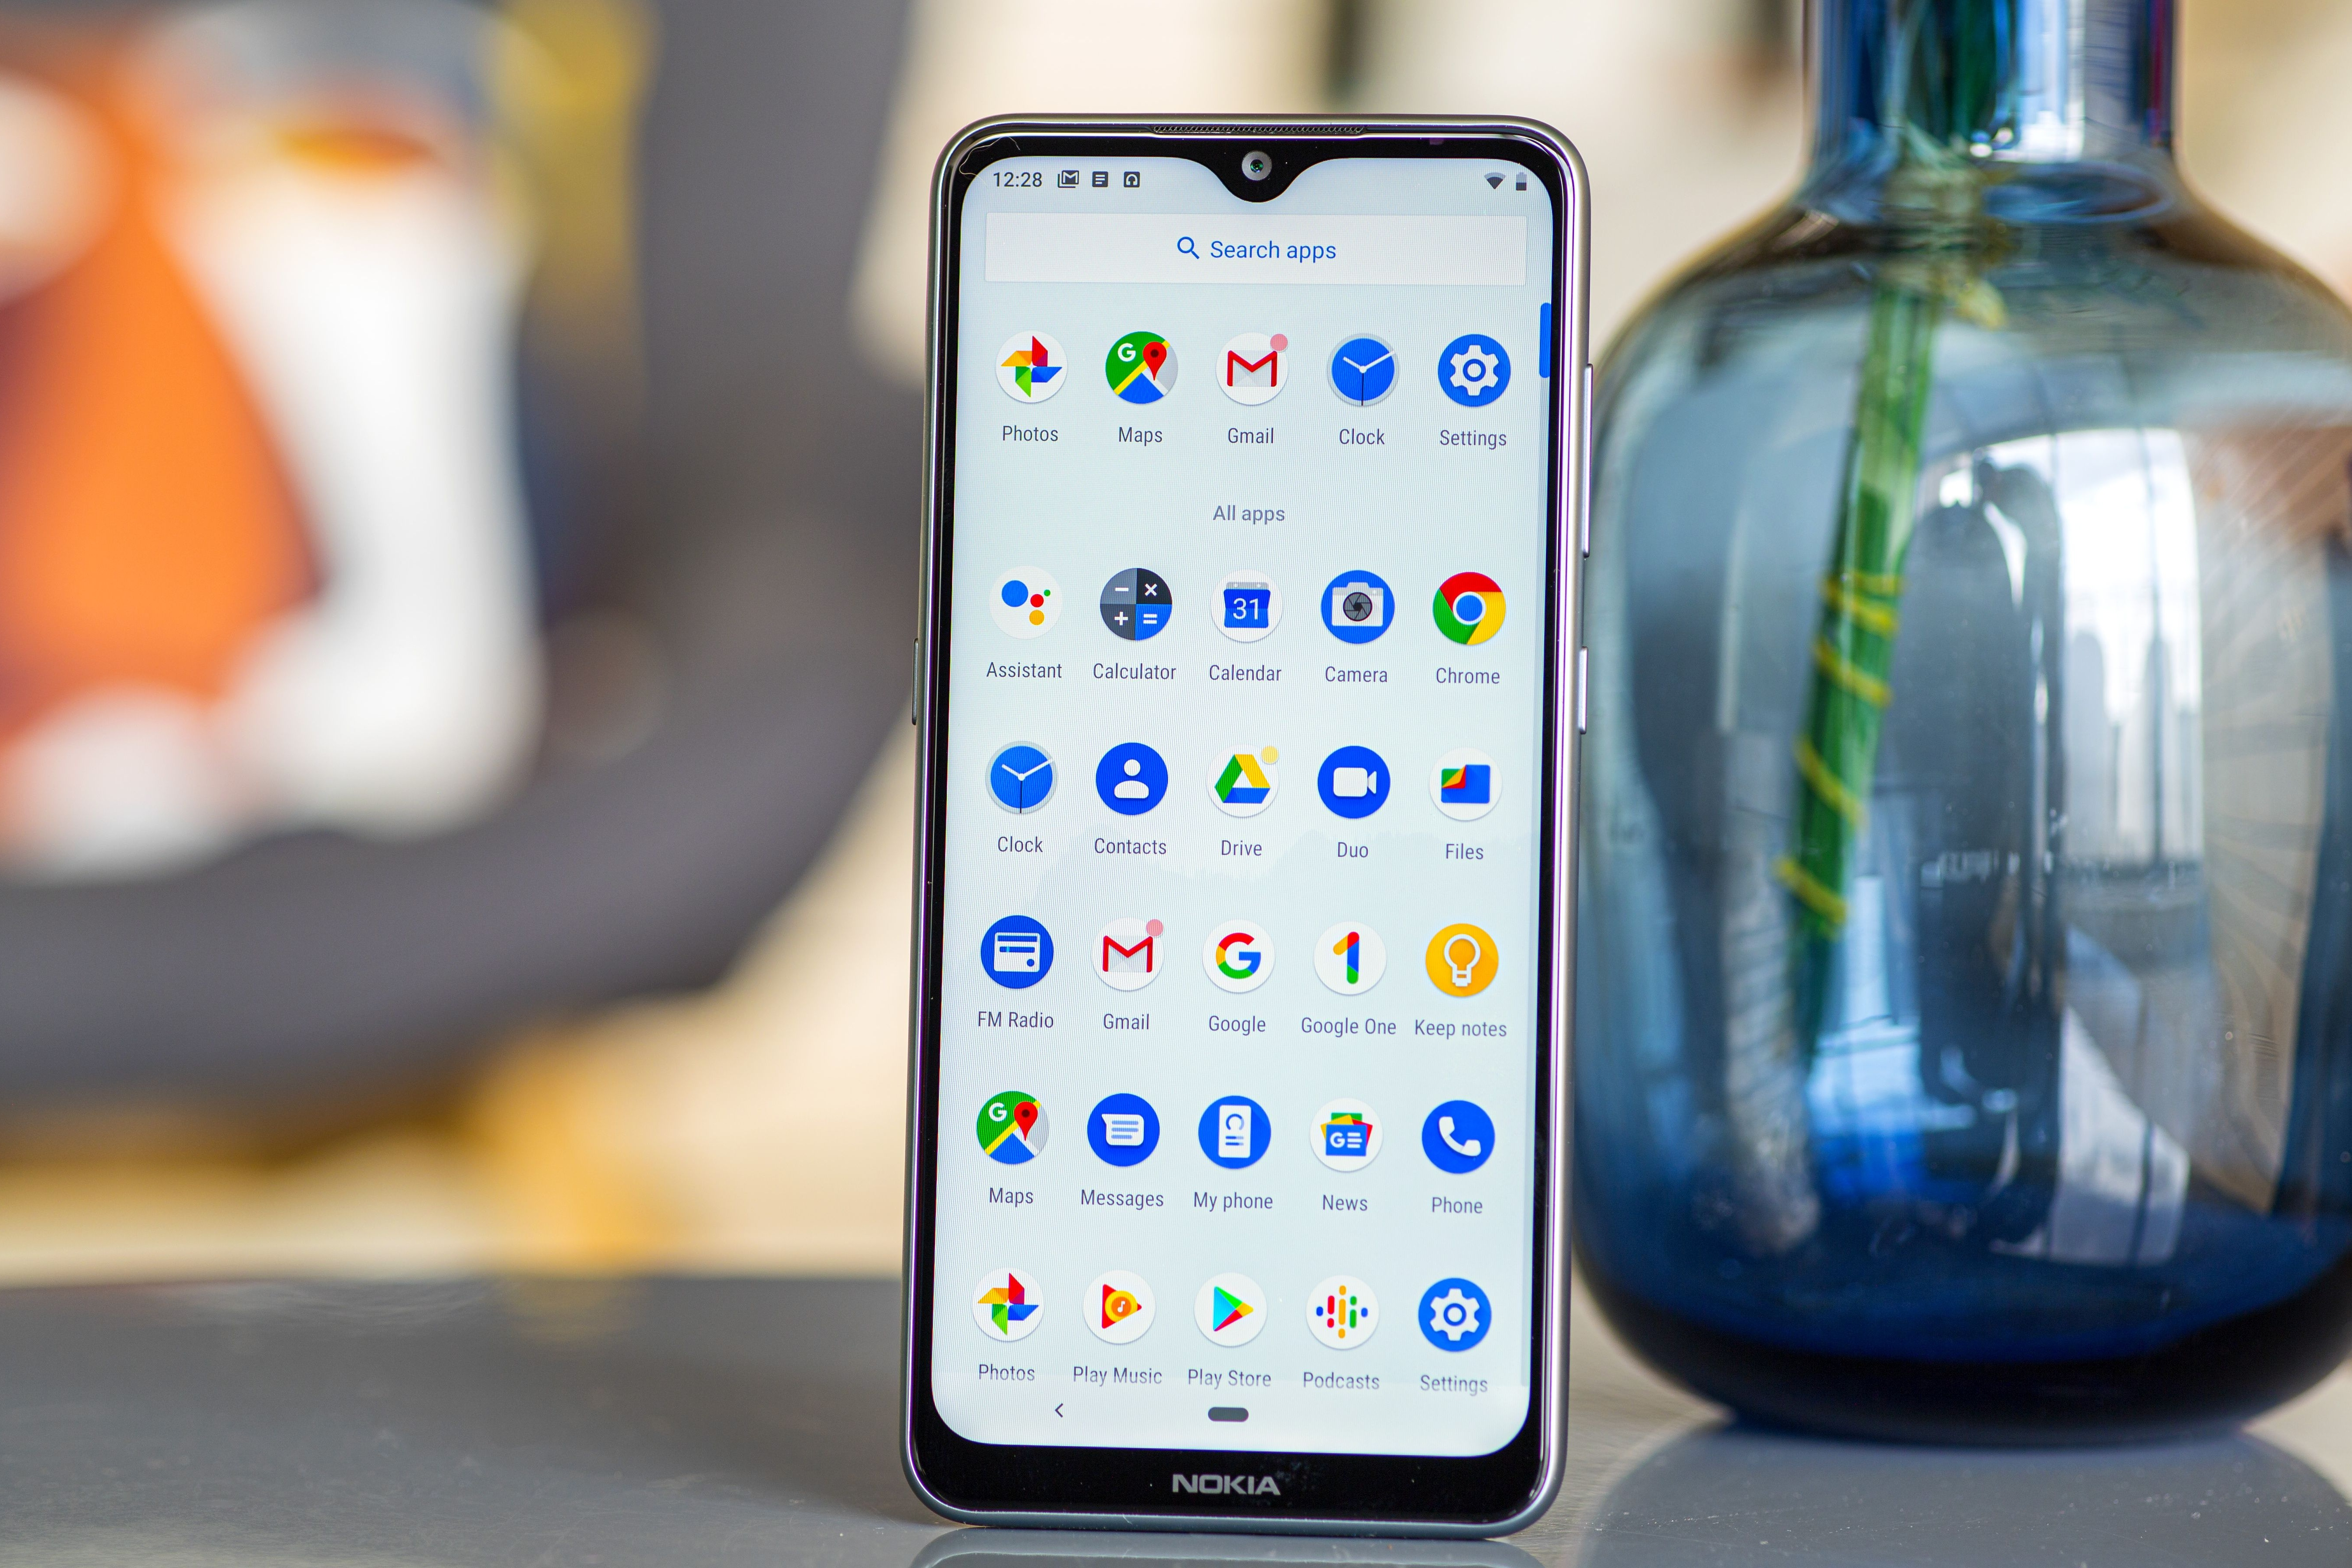 The Nokia 6.2 has a classic \